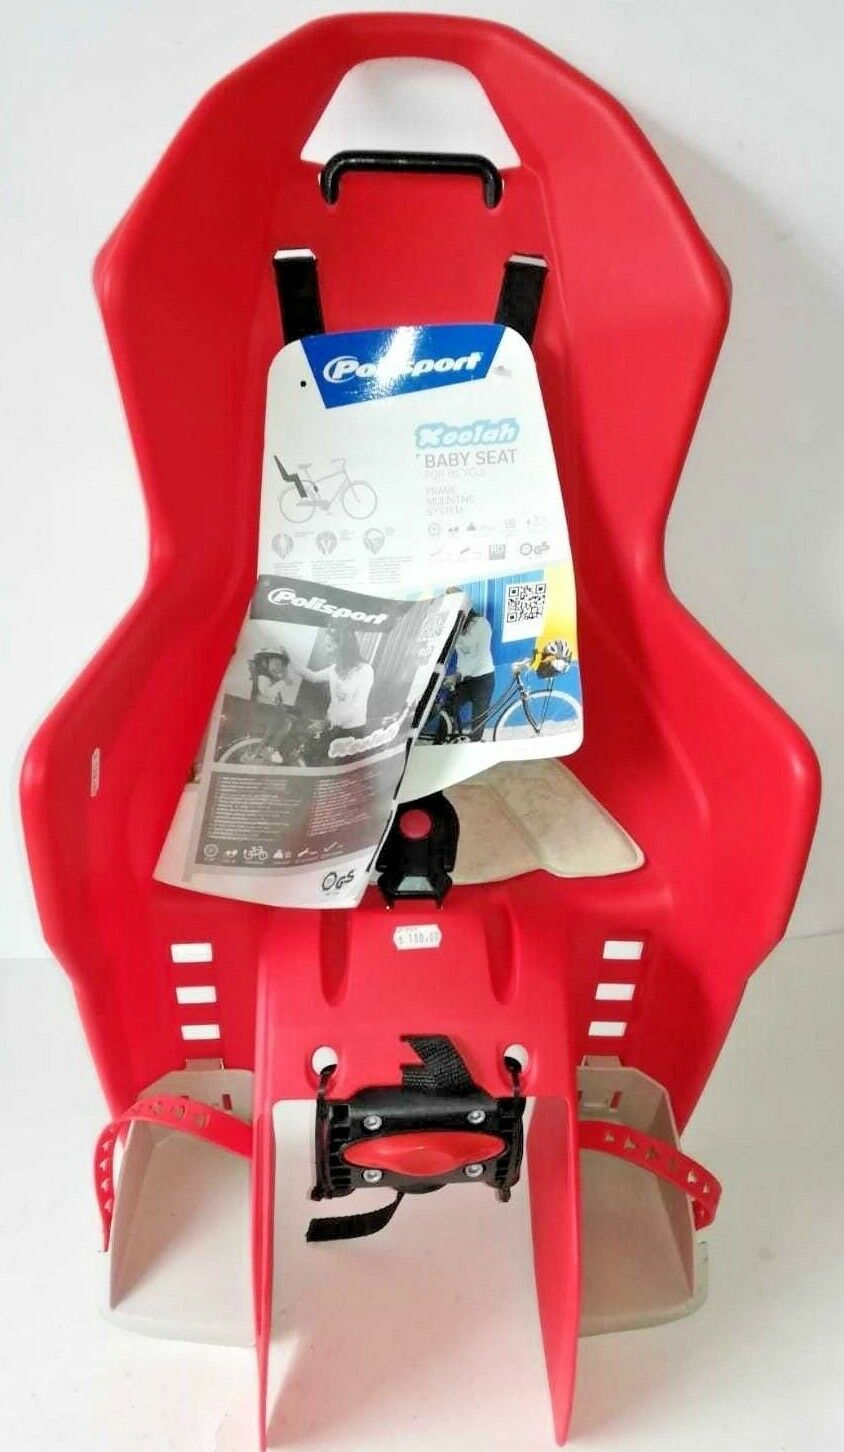 Red Koolah POLISPORT Baby carrier seat on seat tube for babies up to 22kg